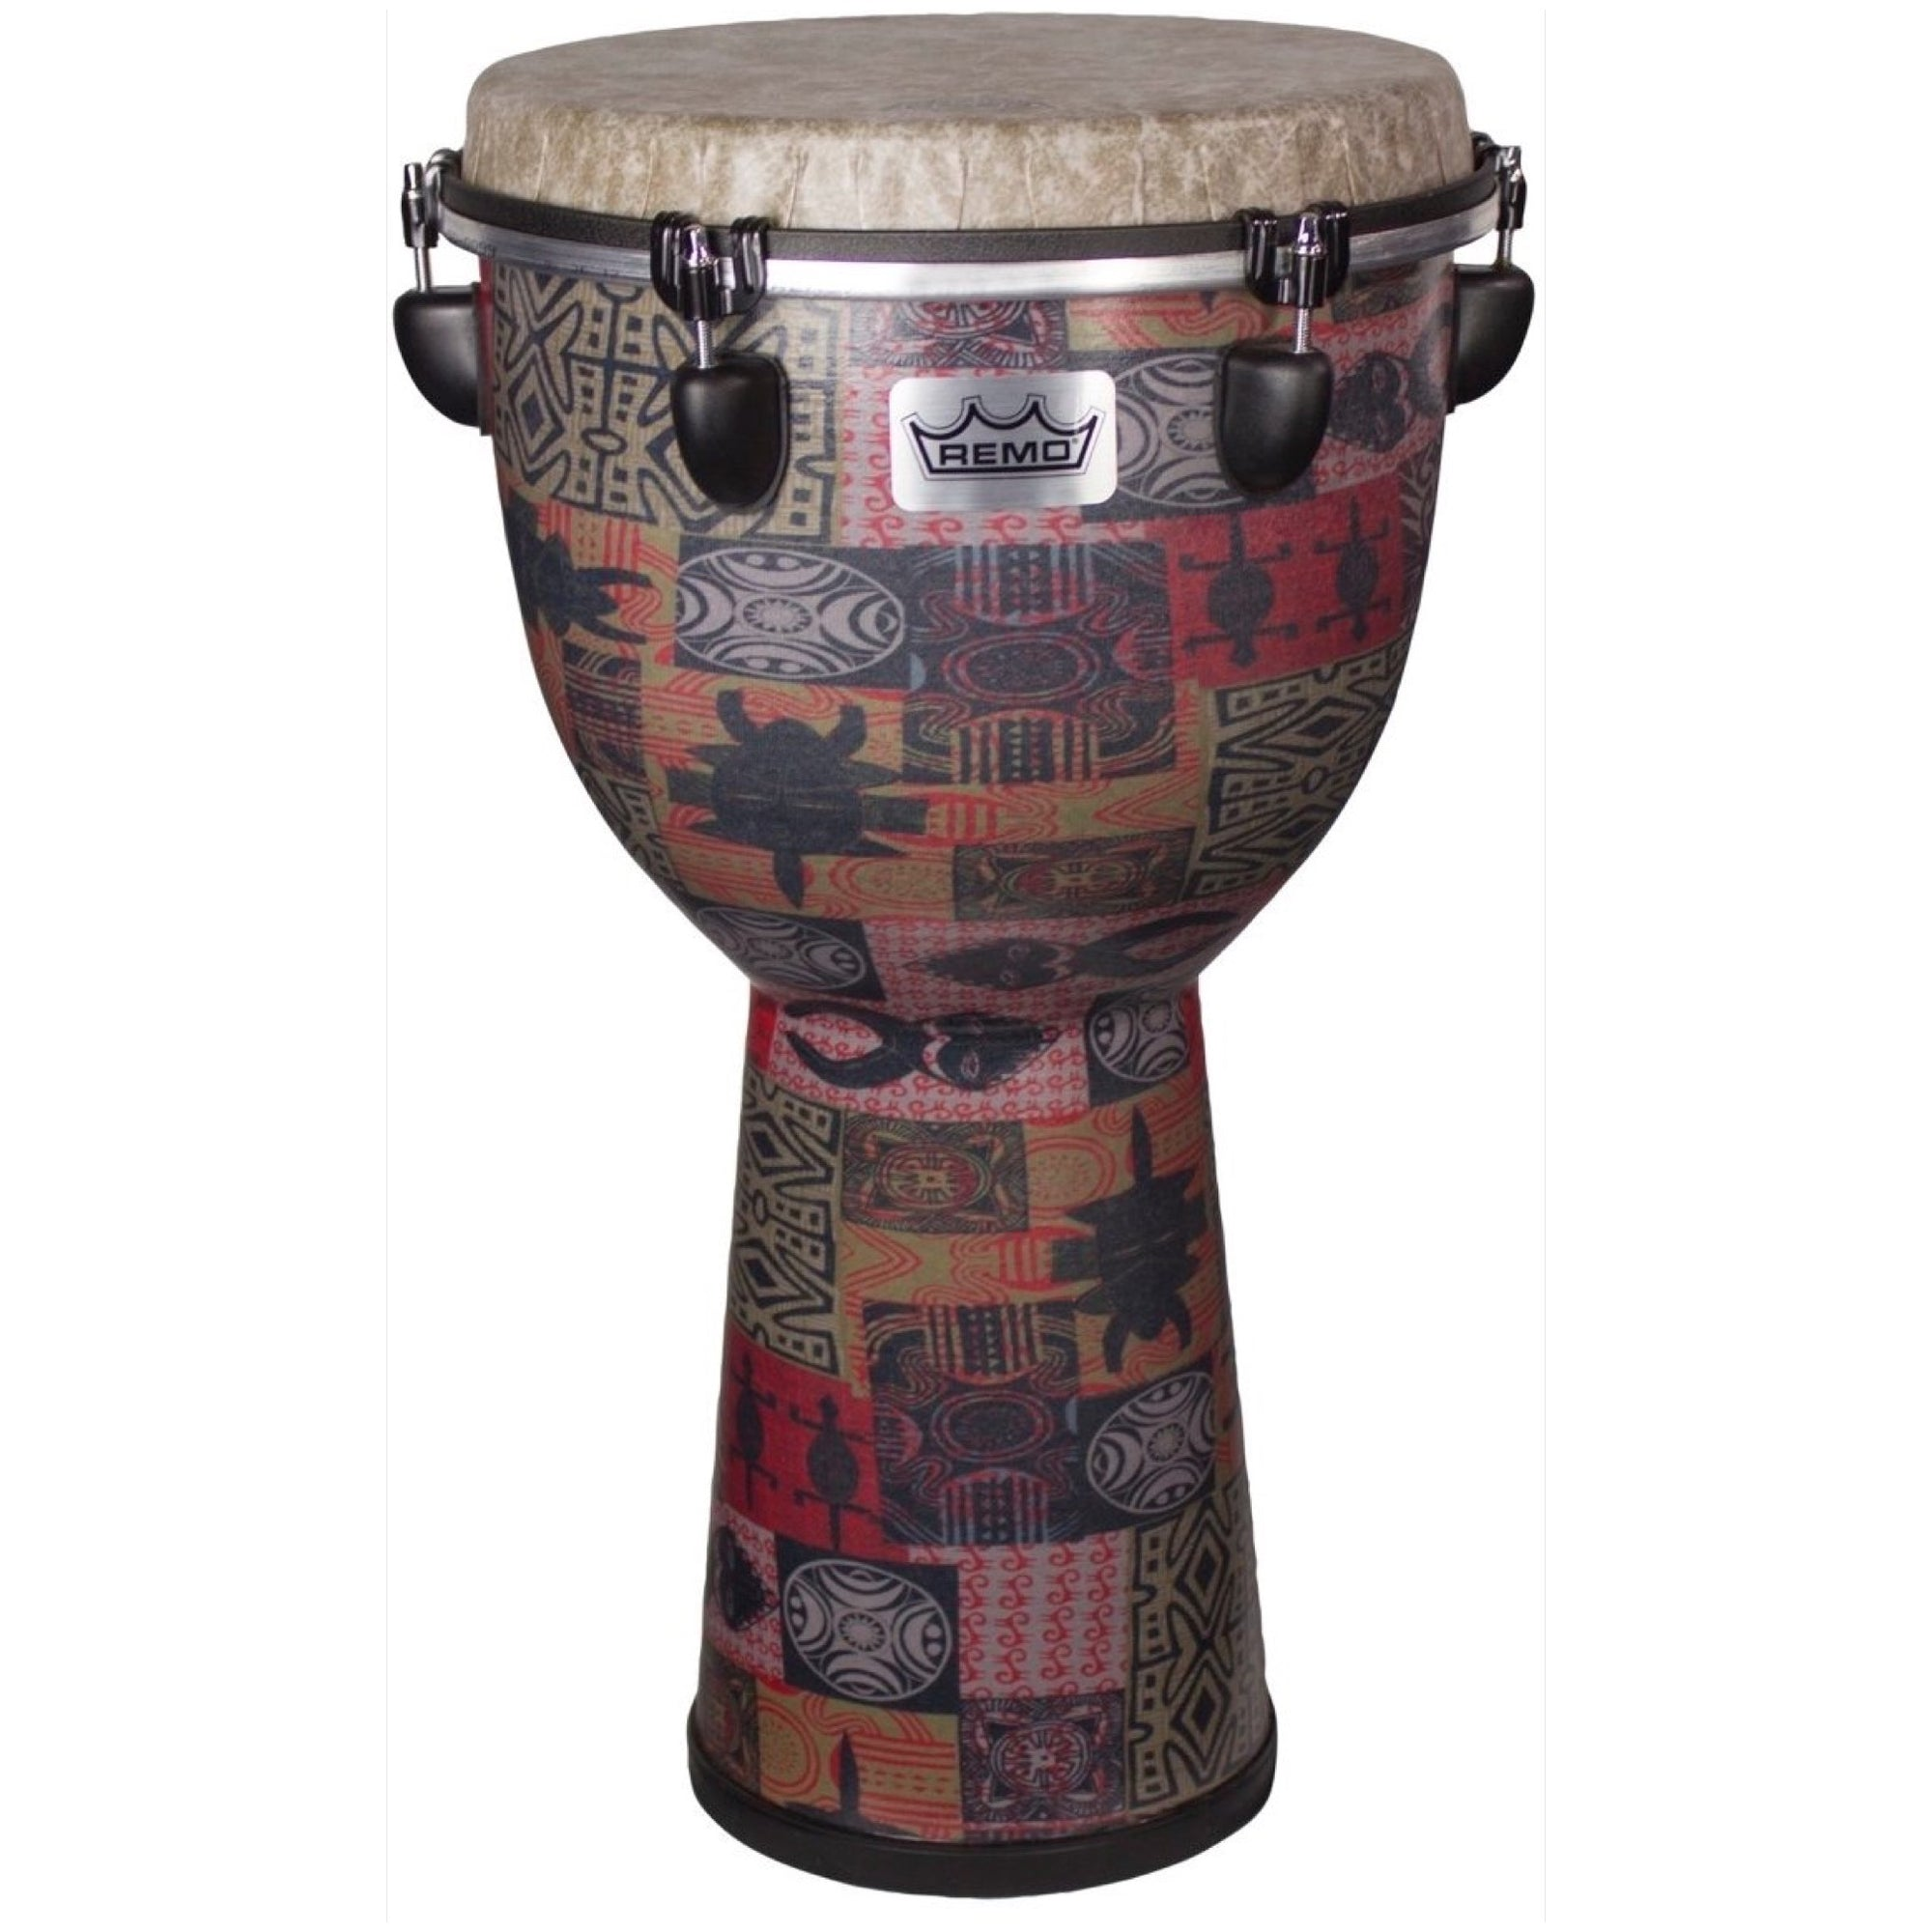 Remo Apex Djembe Drum, Red